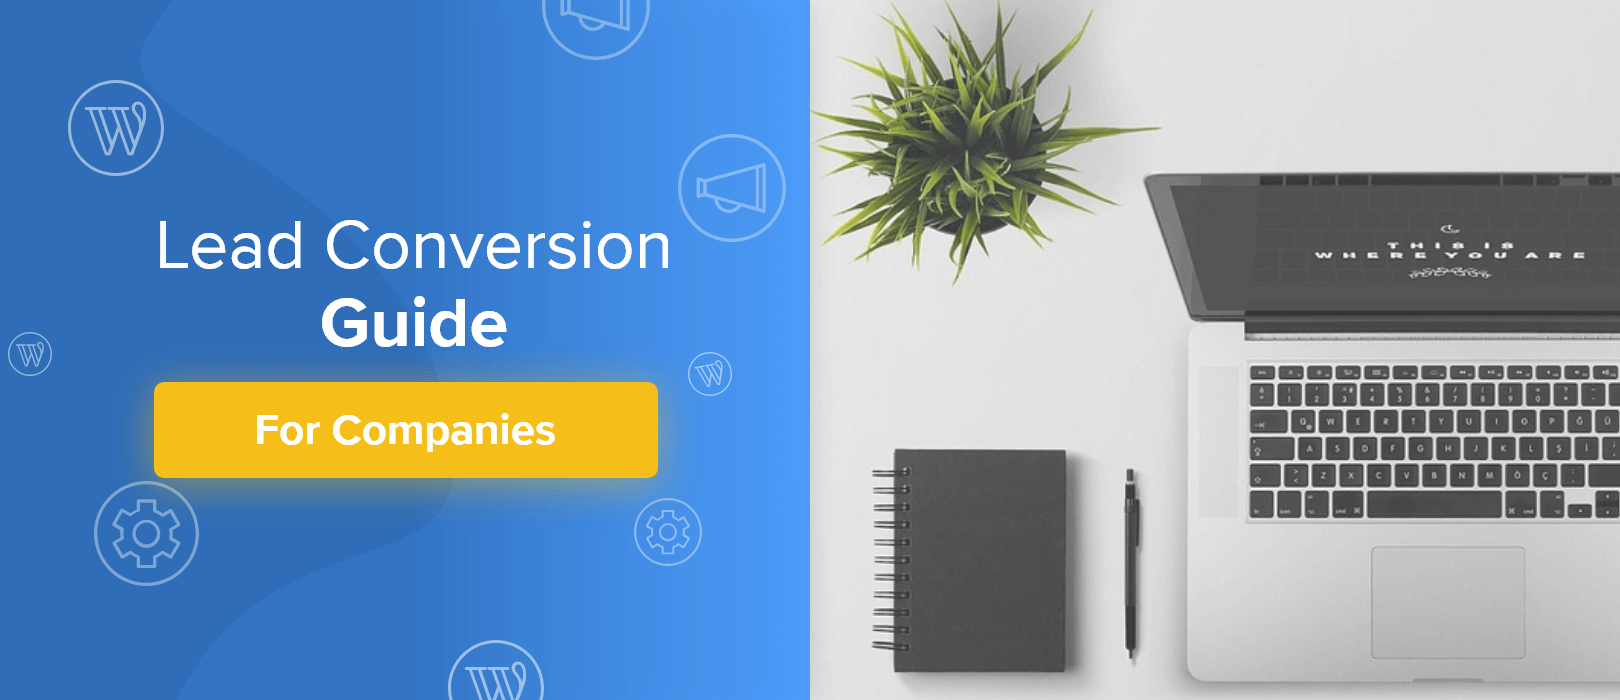 Lead conversion guide for companies